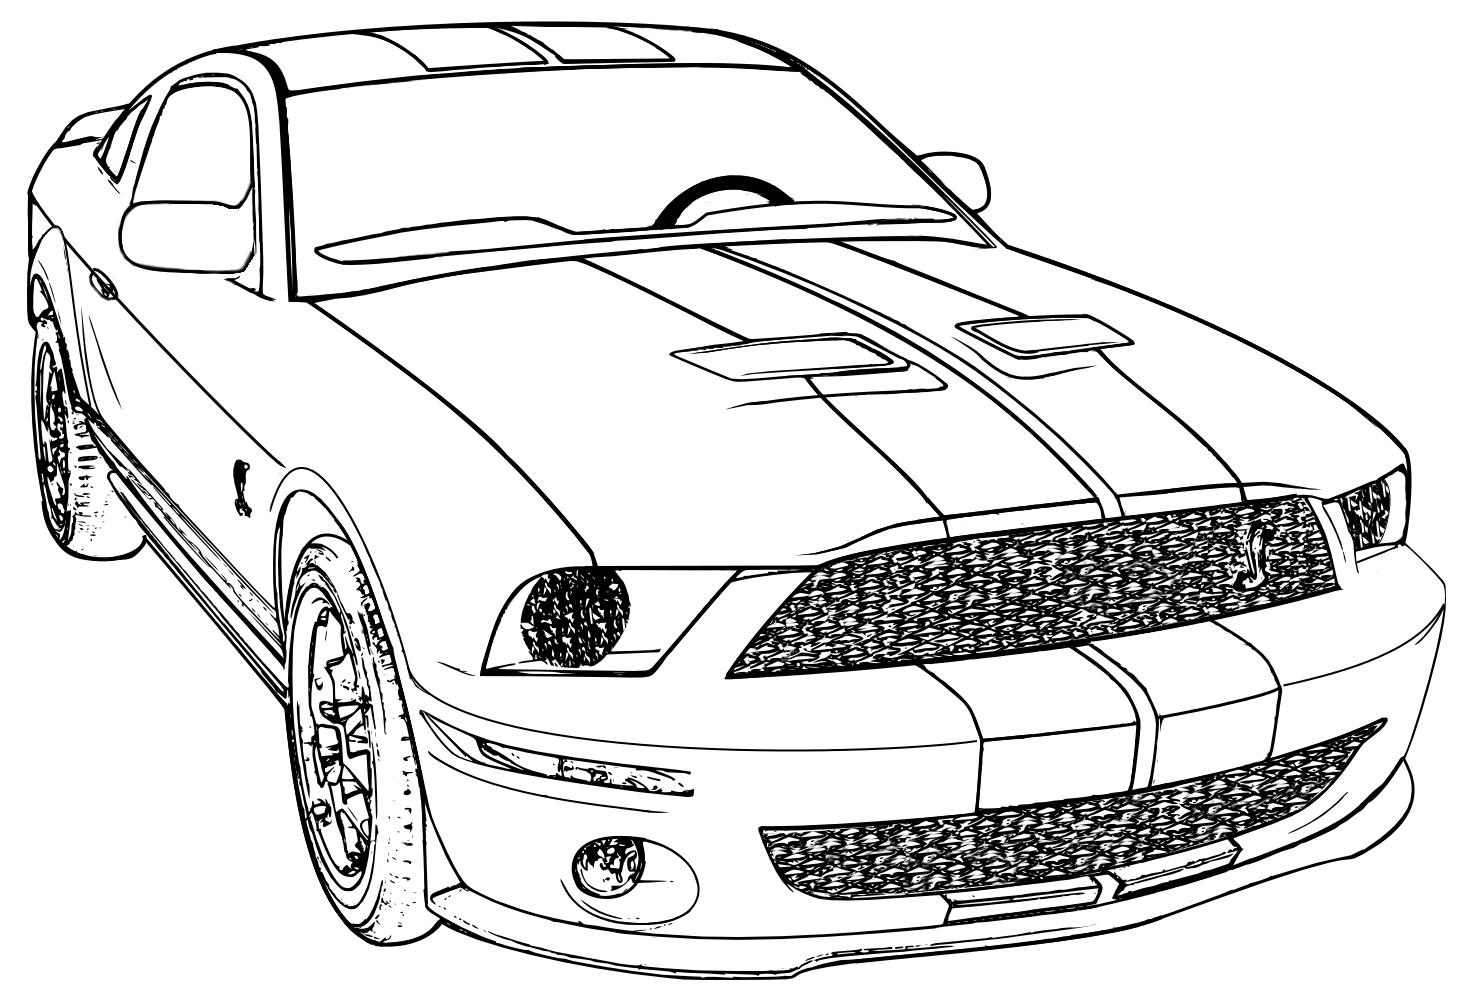 1972 Mustang Coloring Page - Worksheet & Coloring Pages